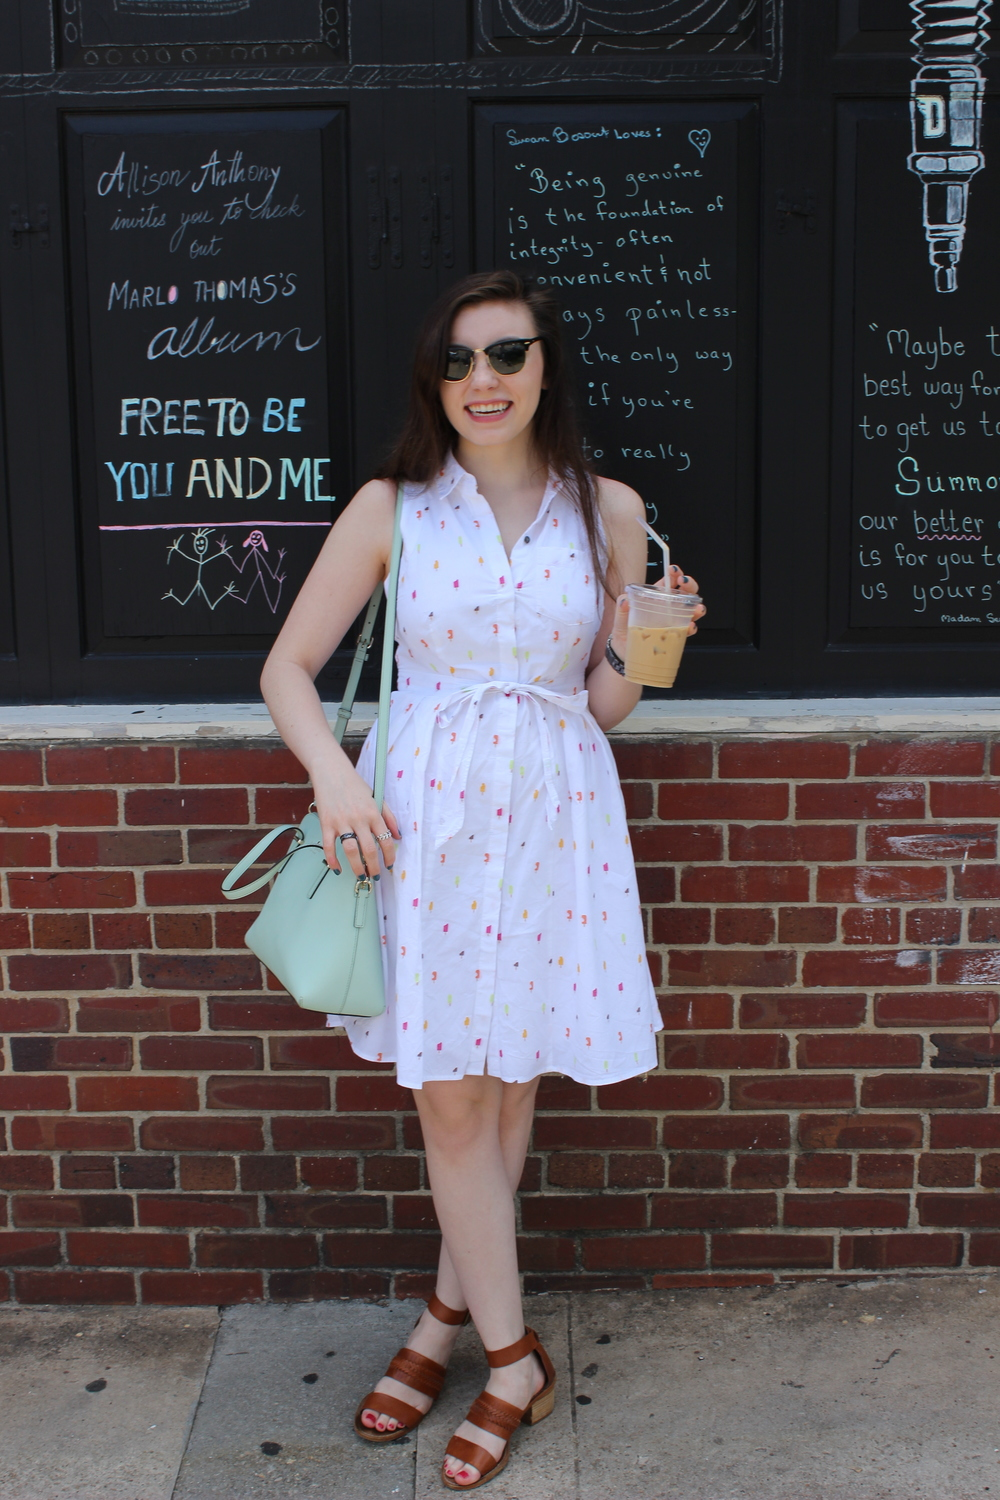 glasses: Ray-Ban, dress: Anthropologie, shoes: Madewell, bag: Kate Spade